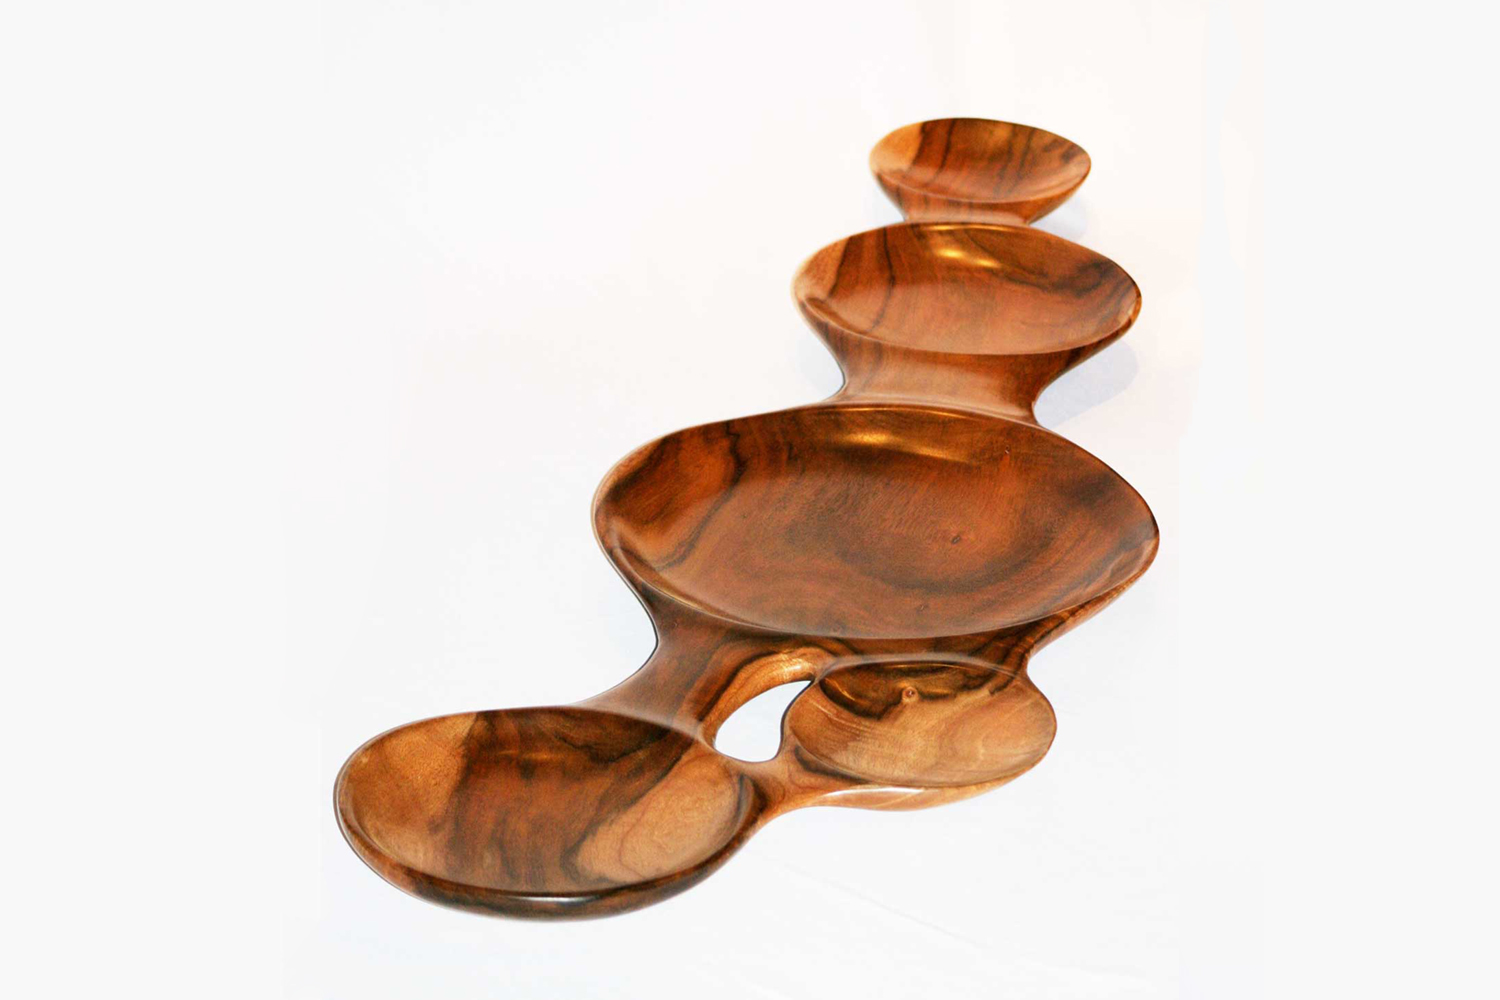 Connected koa wood bowls